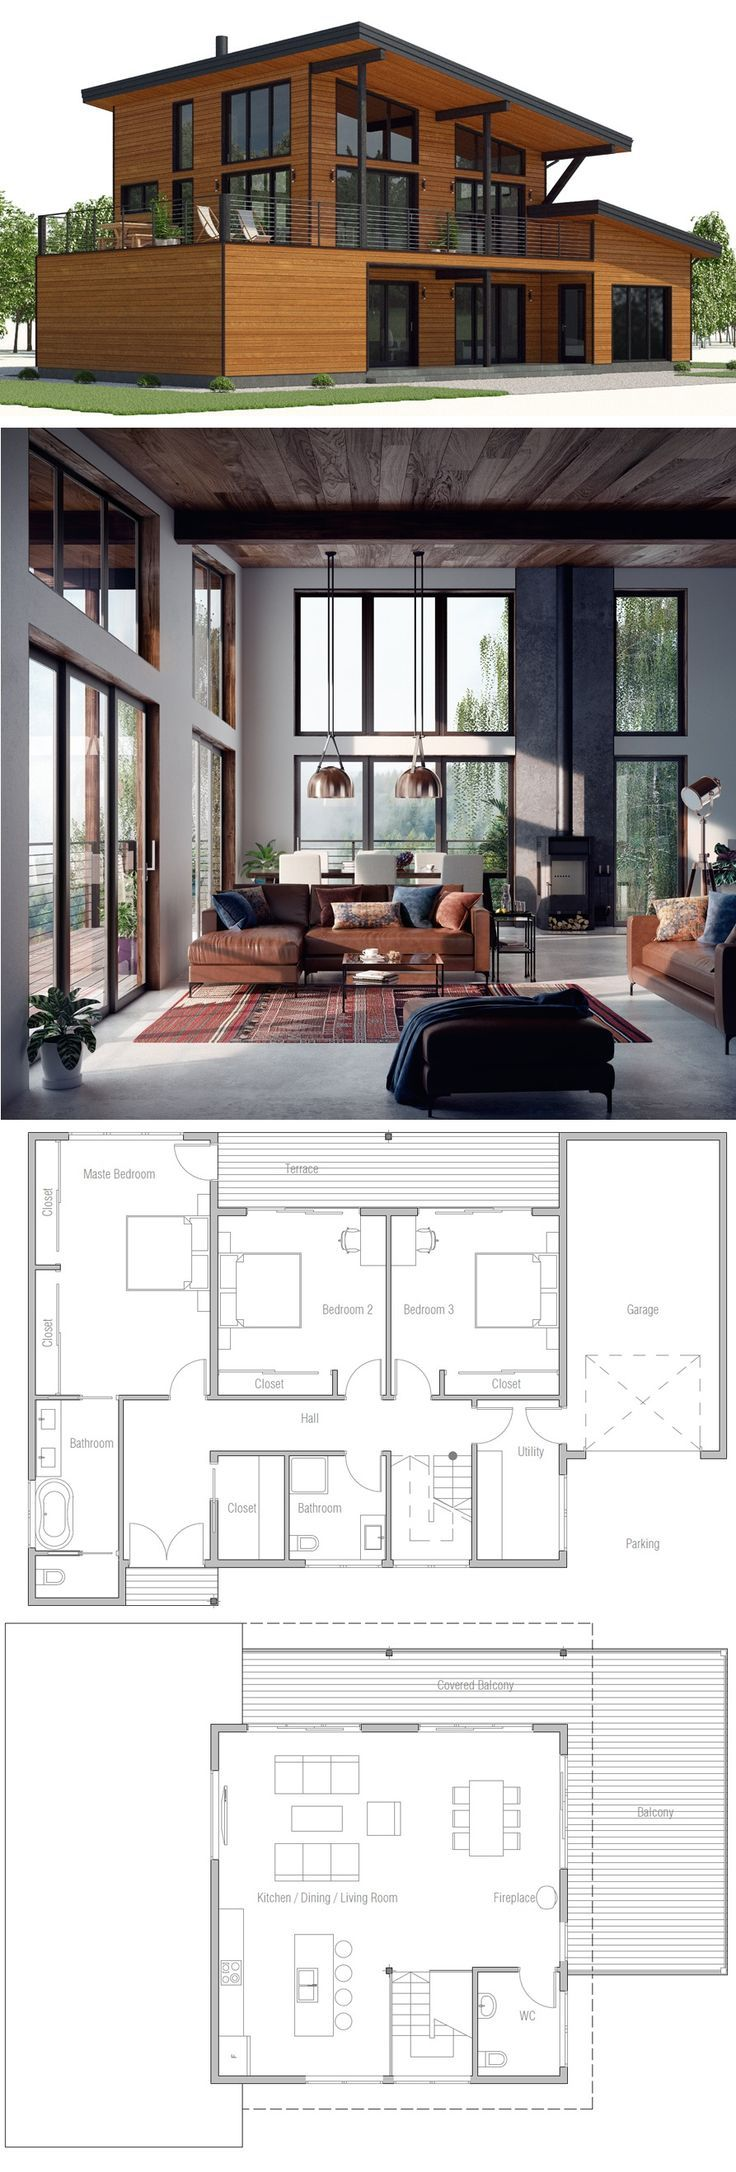 House Plan Built Into A Slope Hill So That Bottom Story Is Only Visible From The Back Affordable Modern Lightin House Layouts House Plans Architecture House